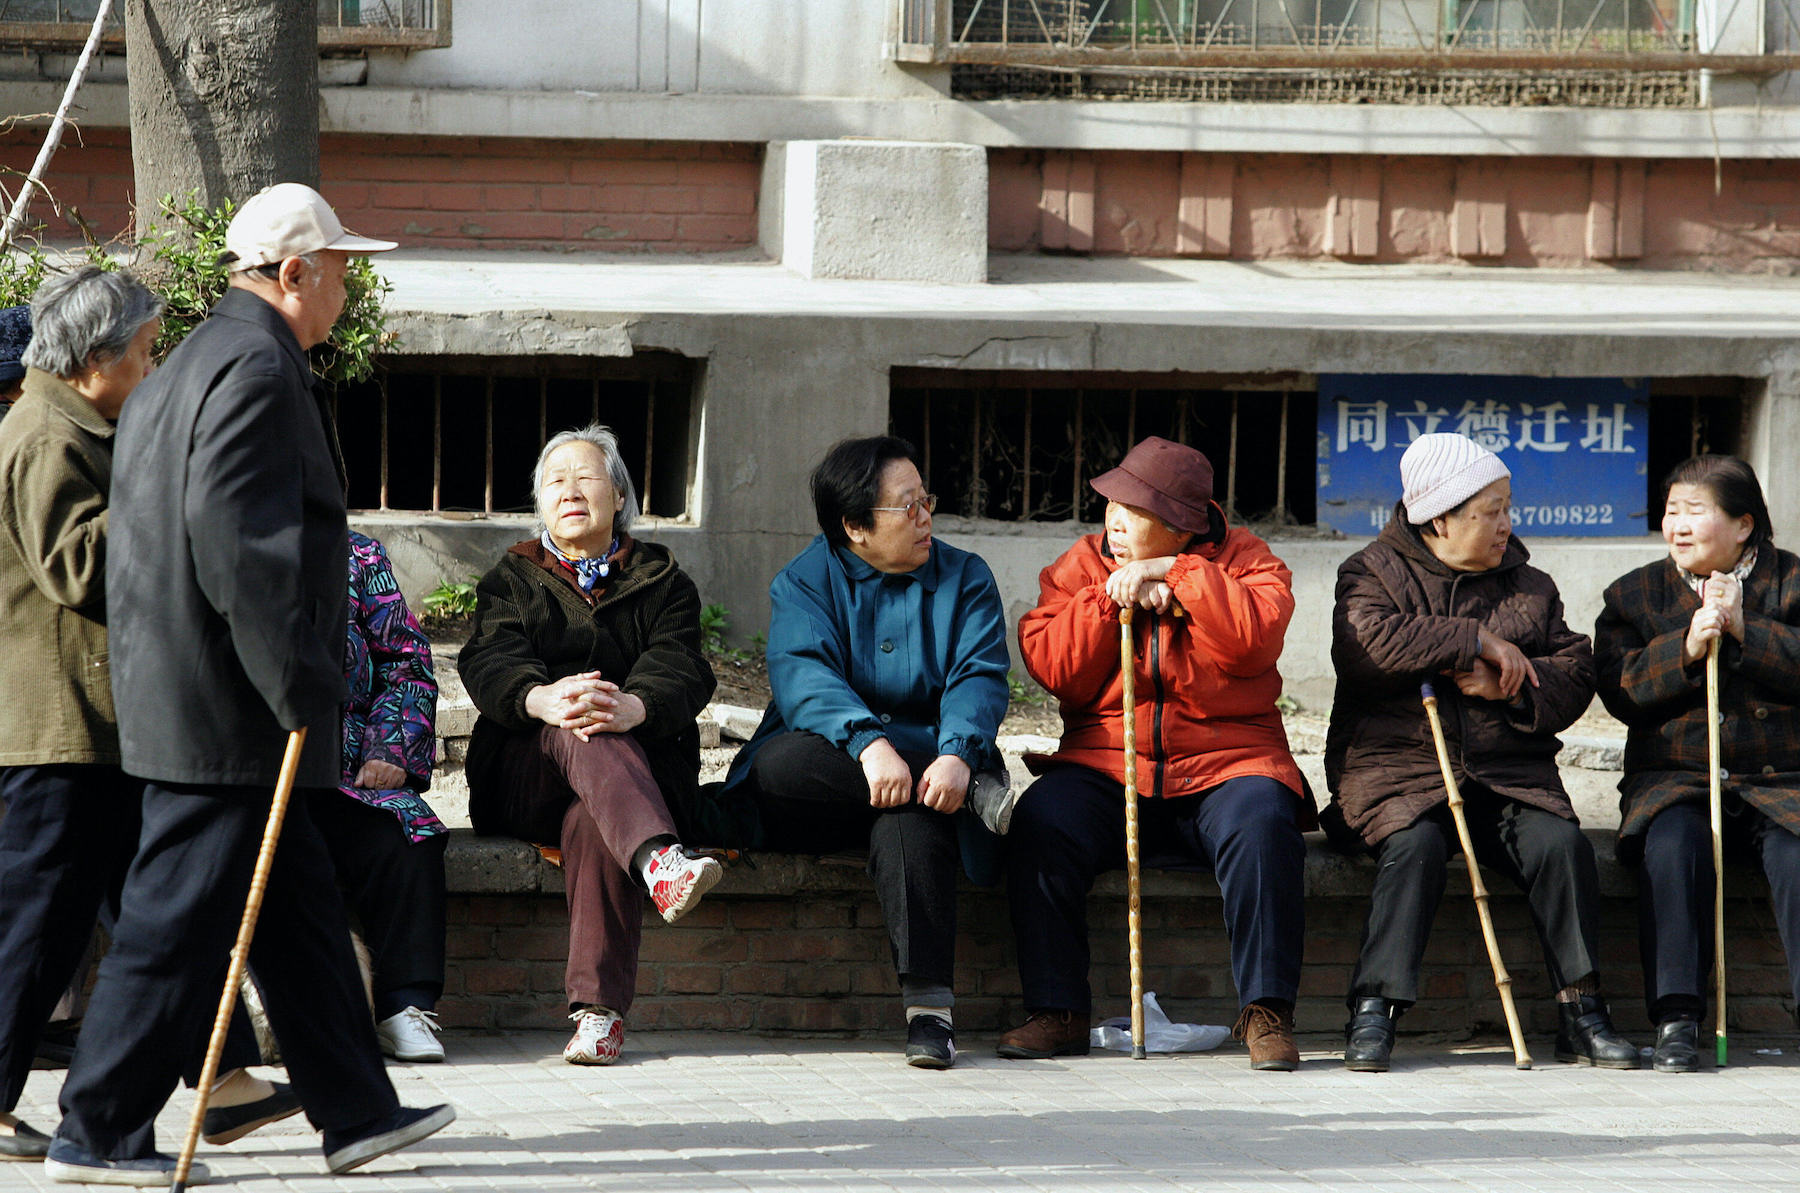 A group of elderly Chinese people enjoys a day in Beijing